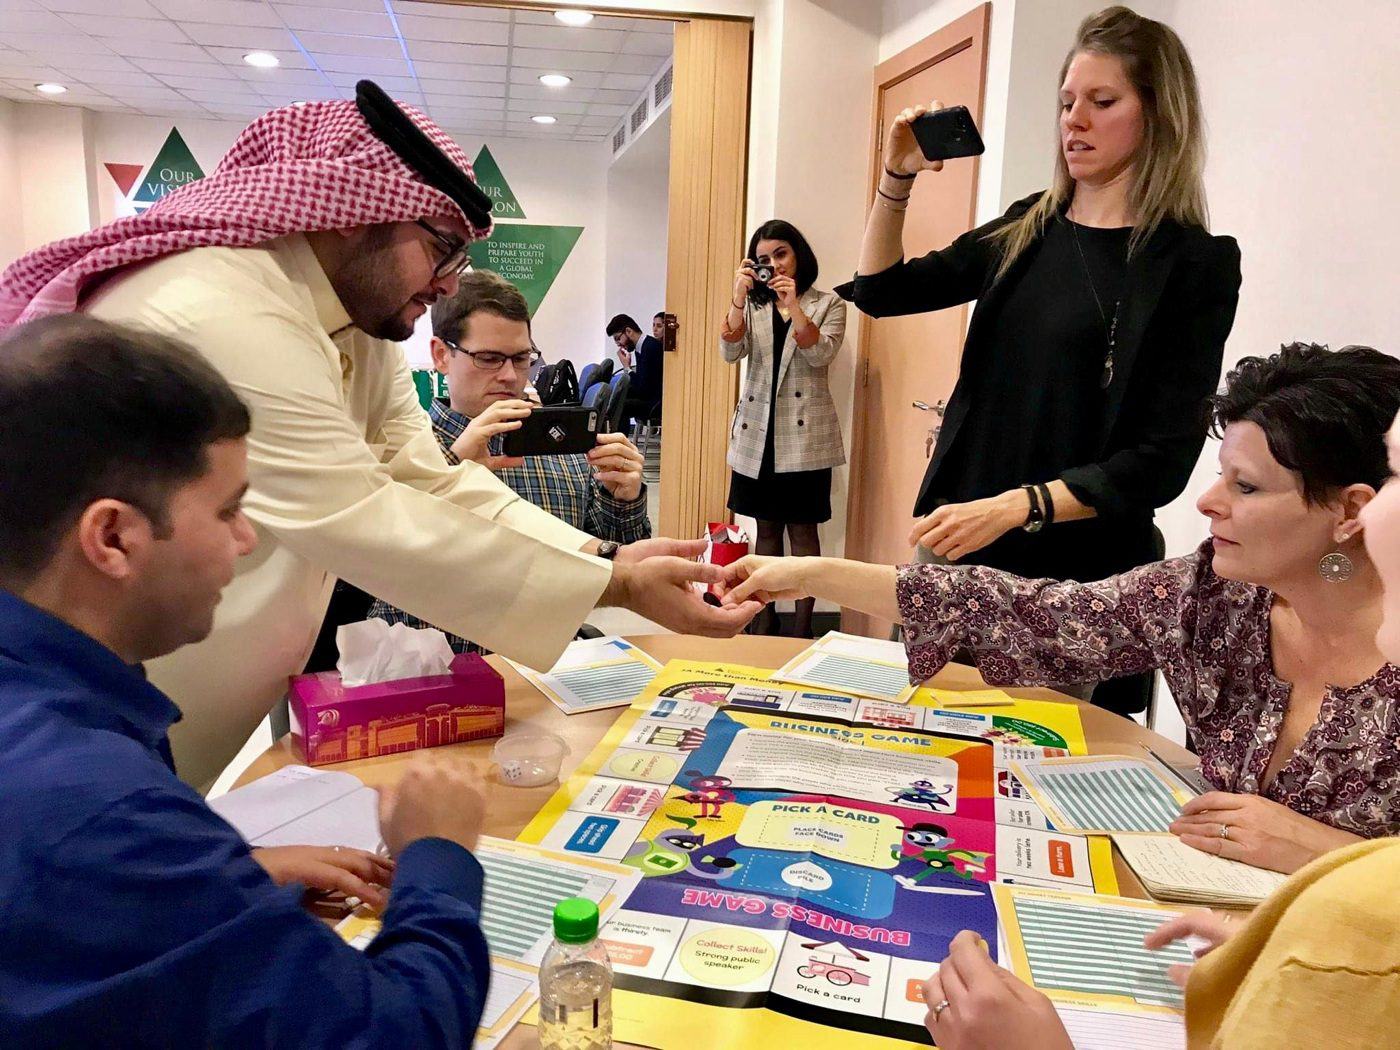 Crossing cultures and connecting in Bahrain.